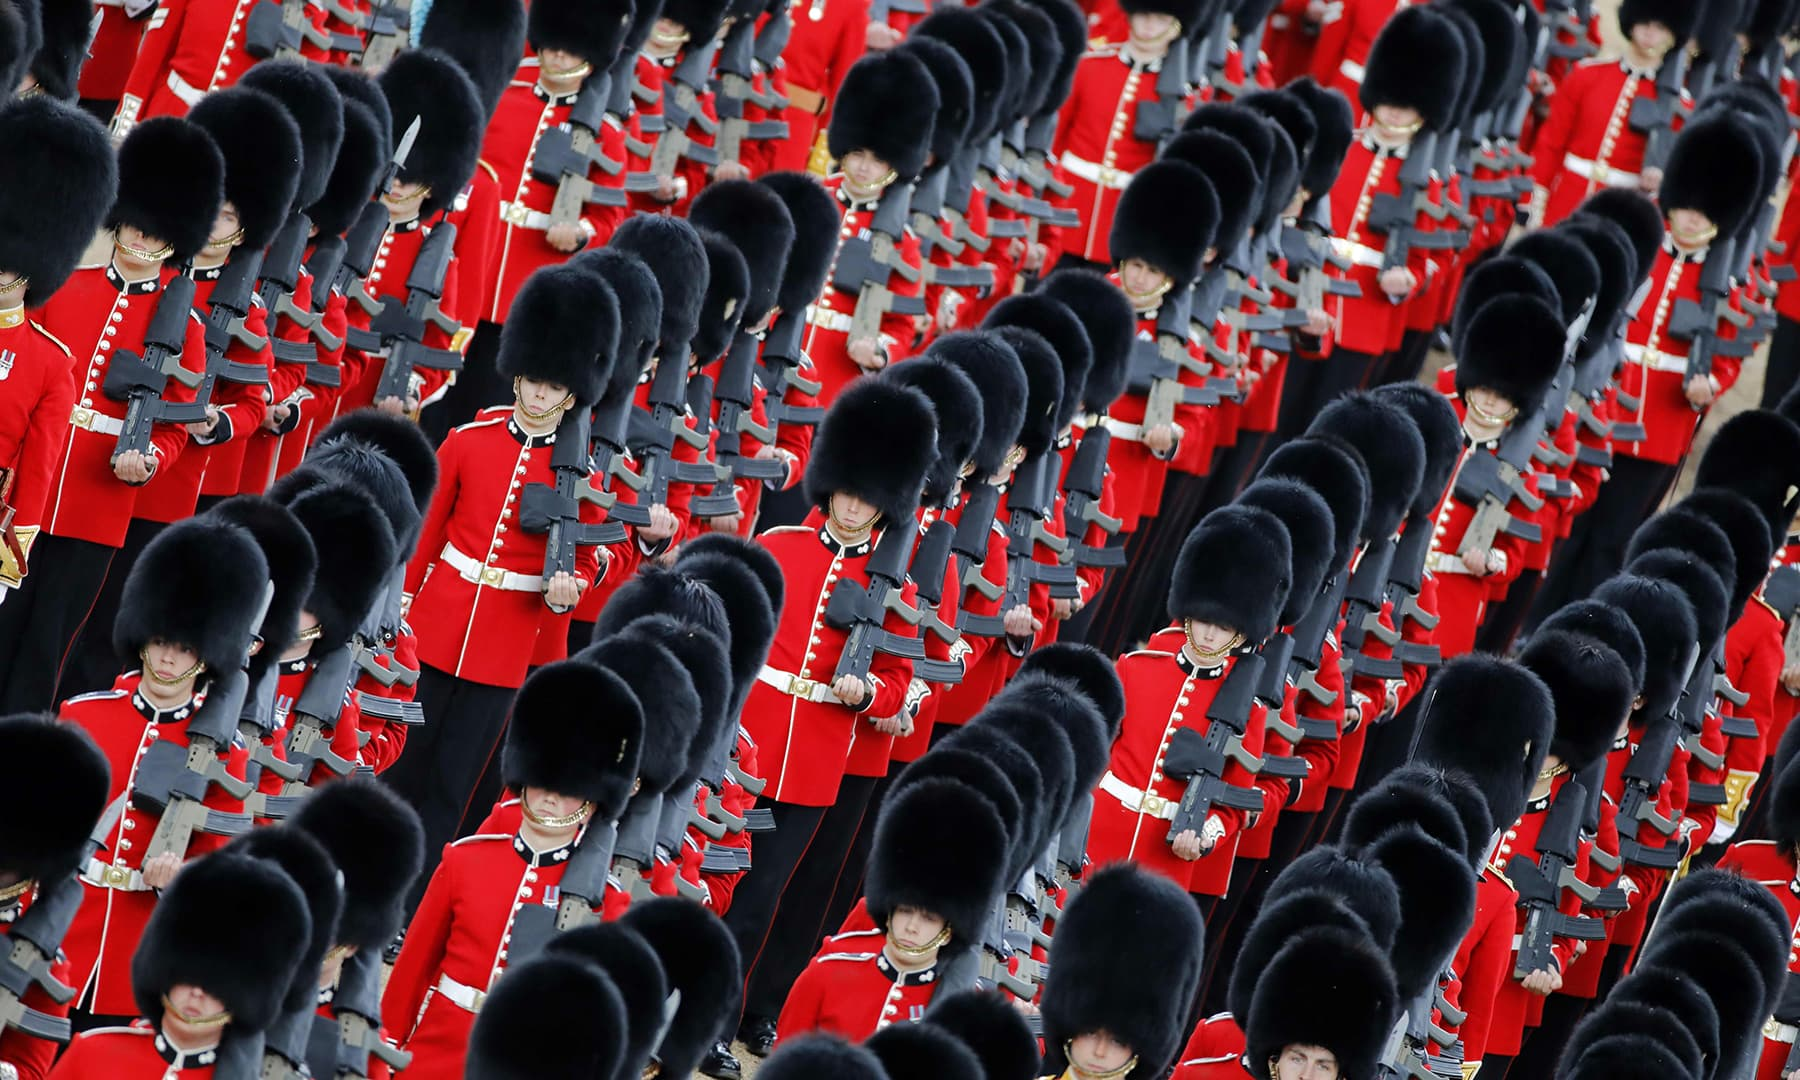 Members of the Grenadier Guards perform. — AFP